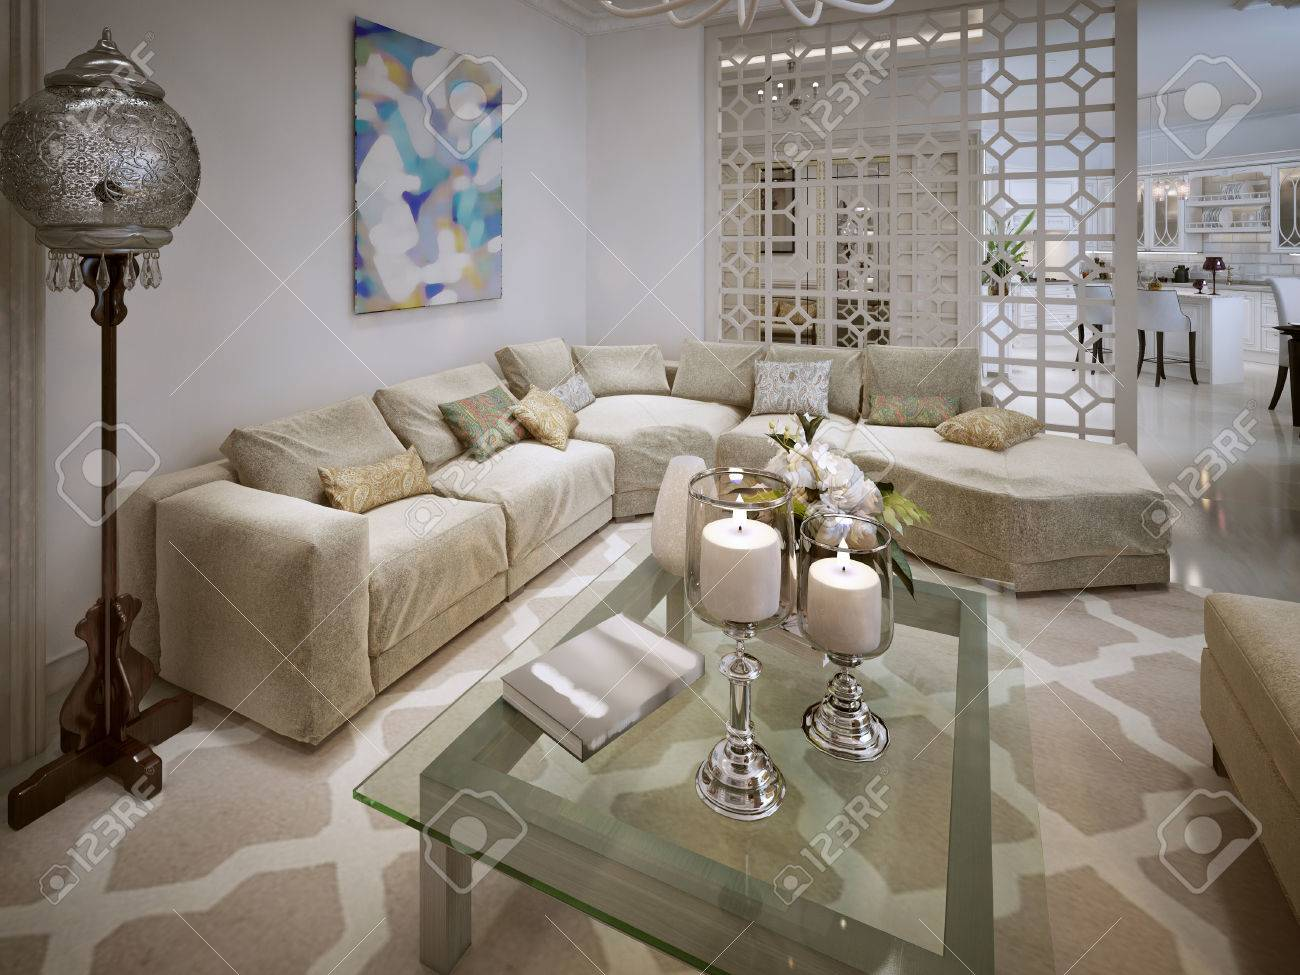 Luxury Living In The Moroccan Style With A Large Sofa 3d Render